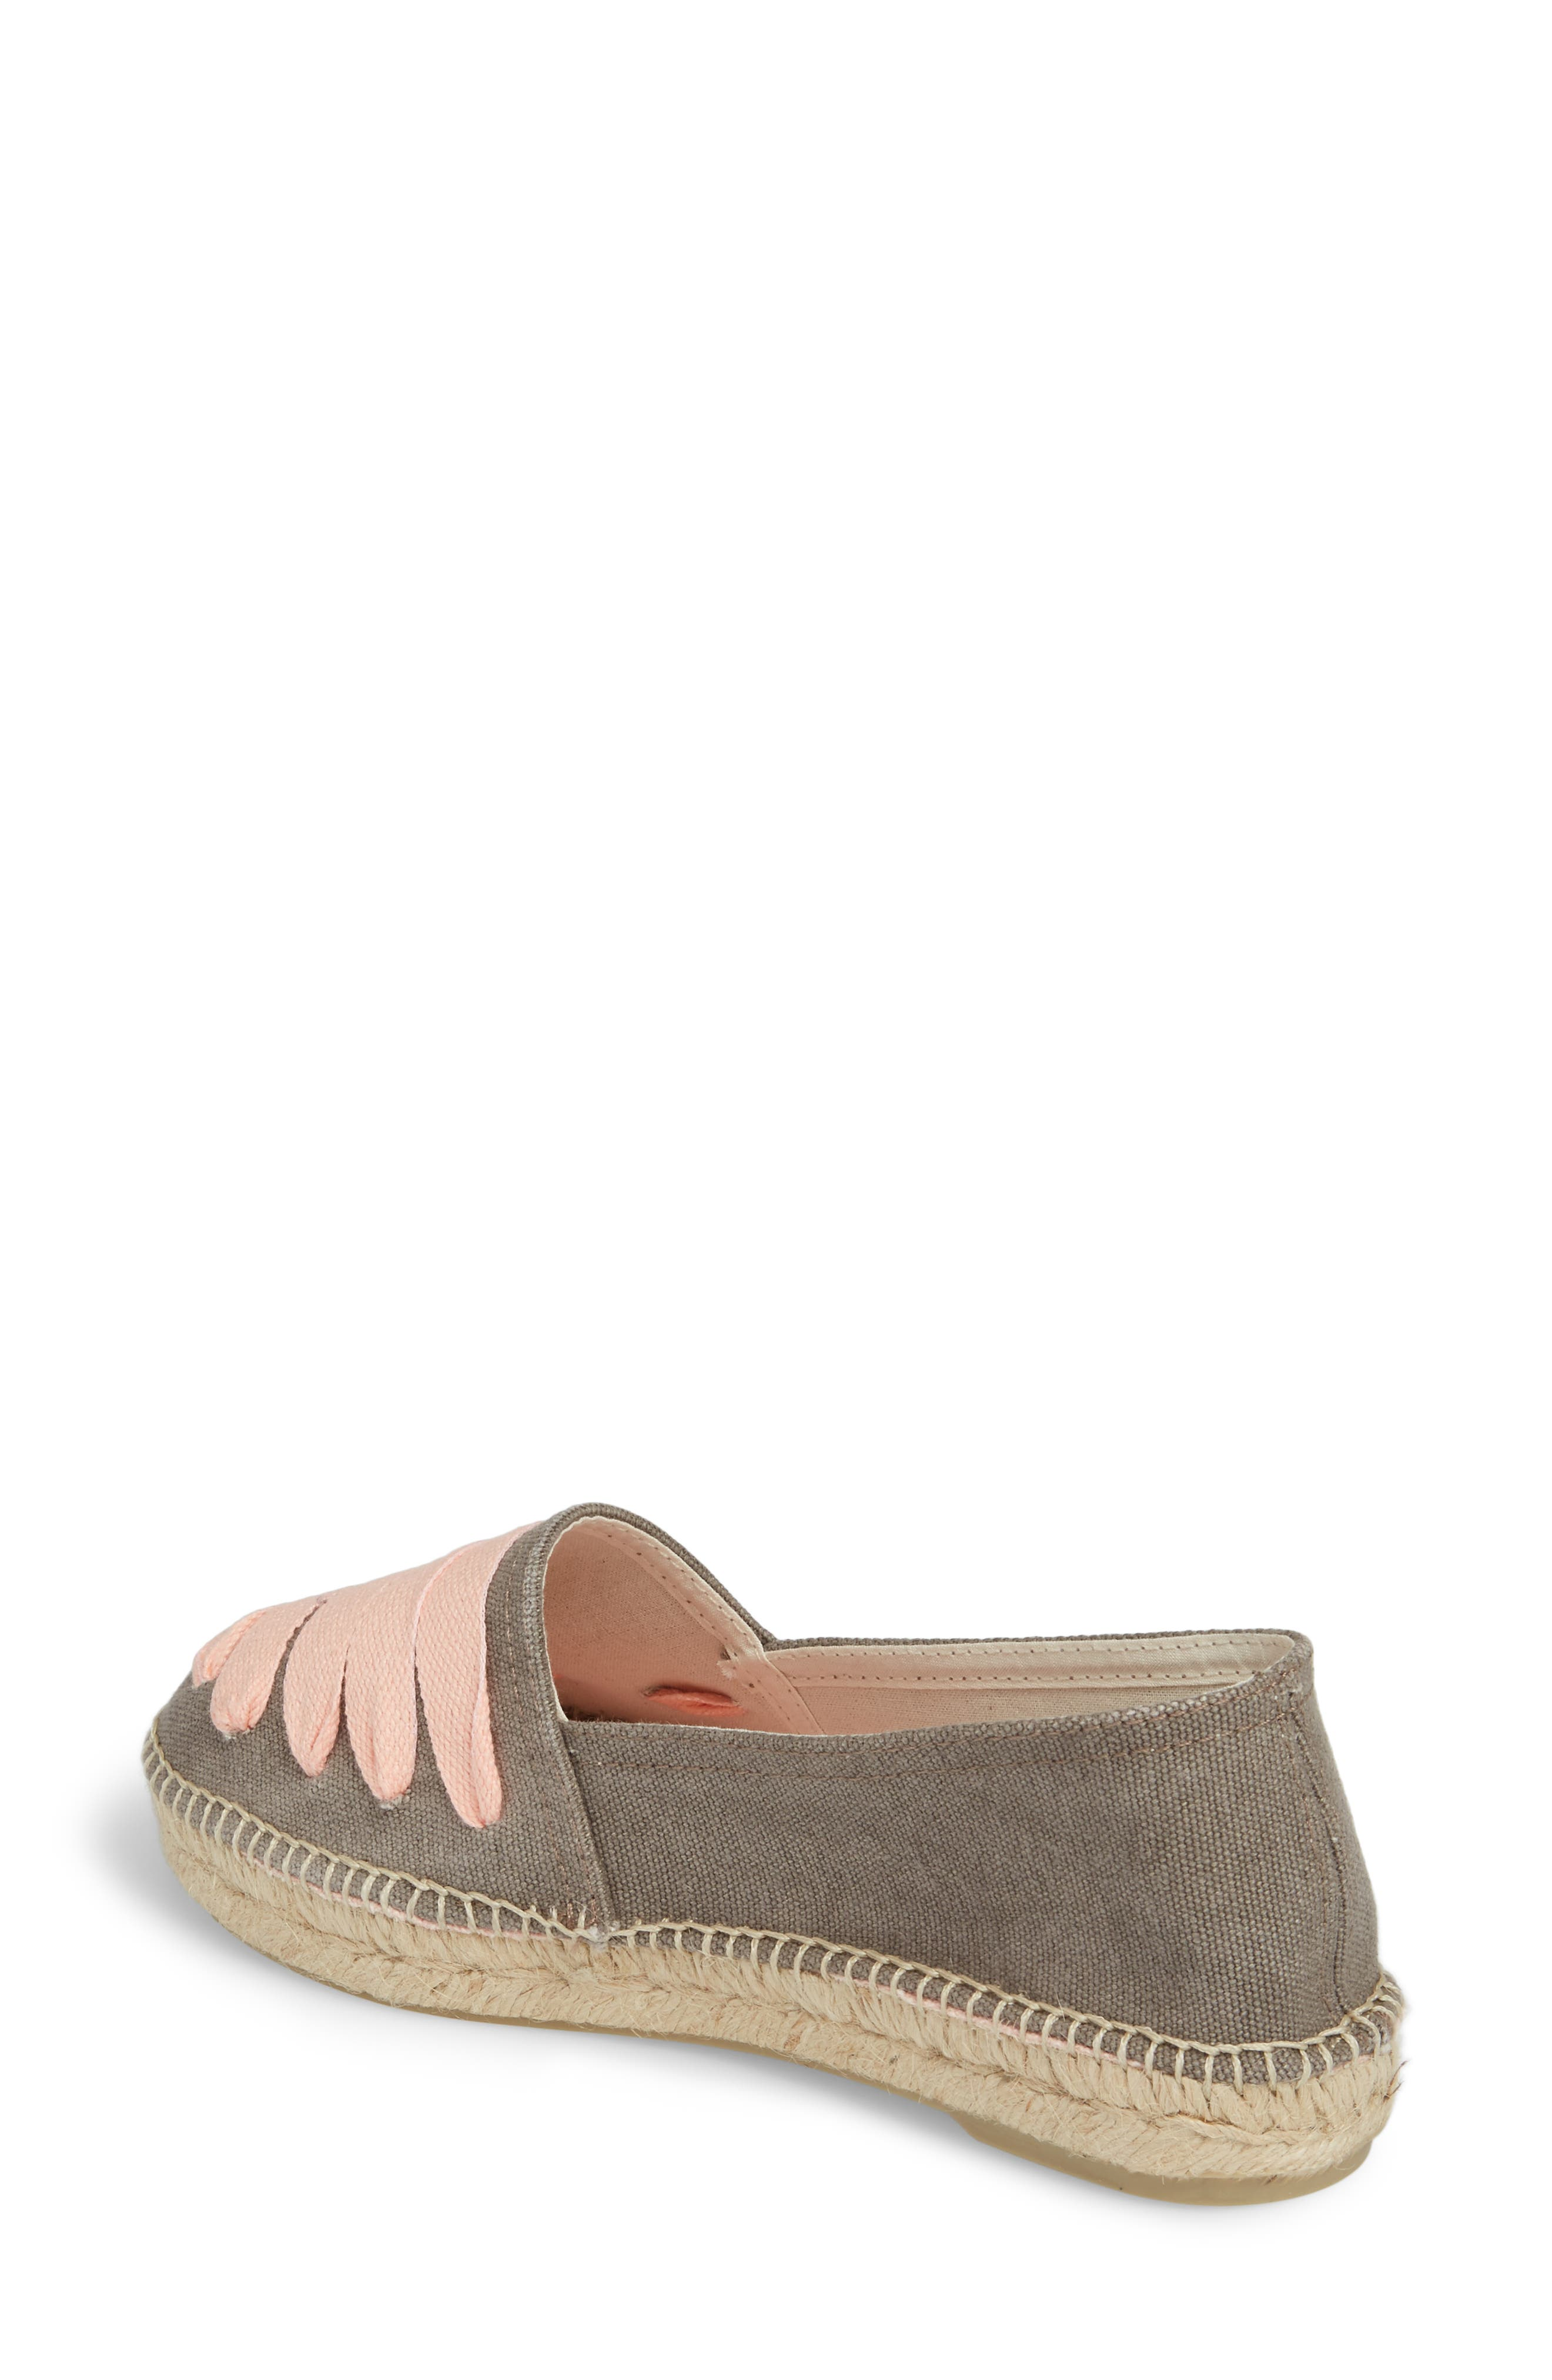 Rubi Espadrille Flat,                             Alternate thumbnail 2, color,                             Gris/ Rosa Fabric